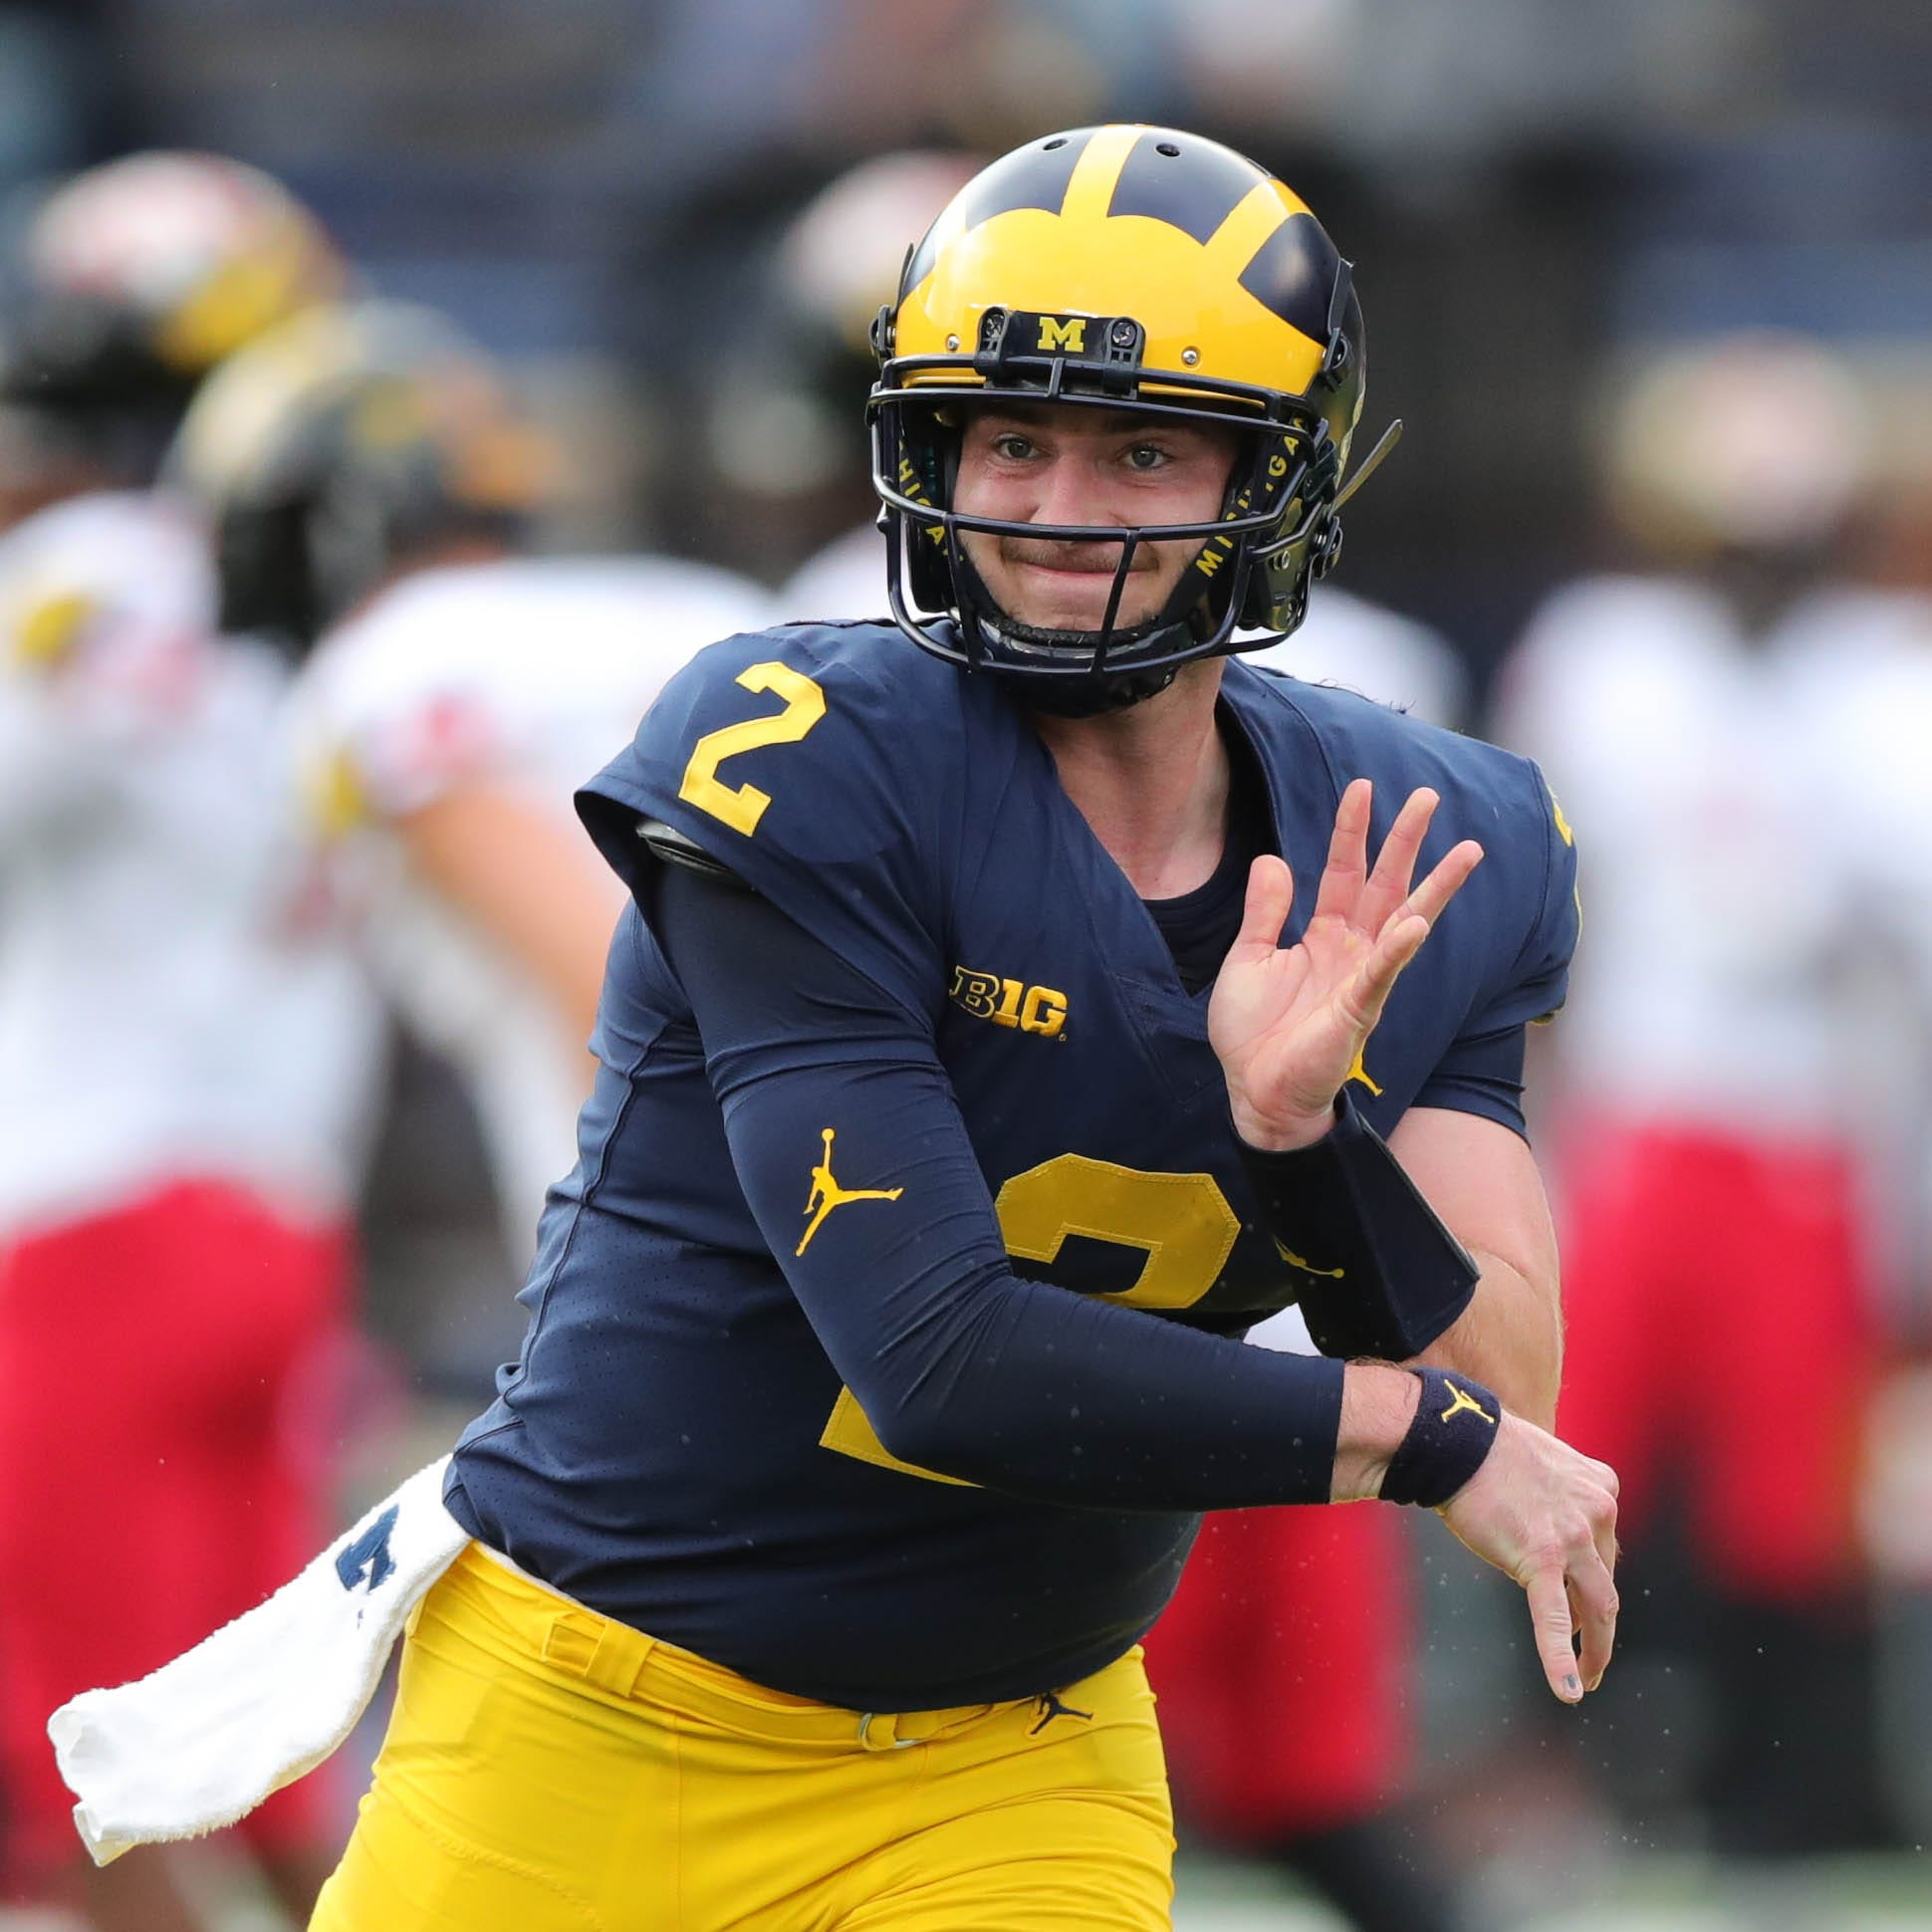 Michigan football QB Shea Patterson should stay in school | Opinion